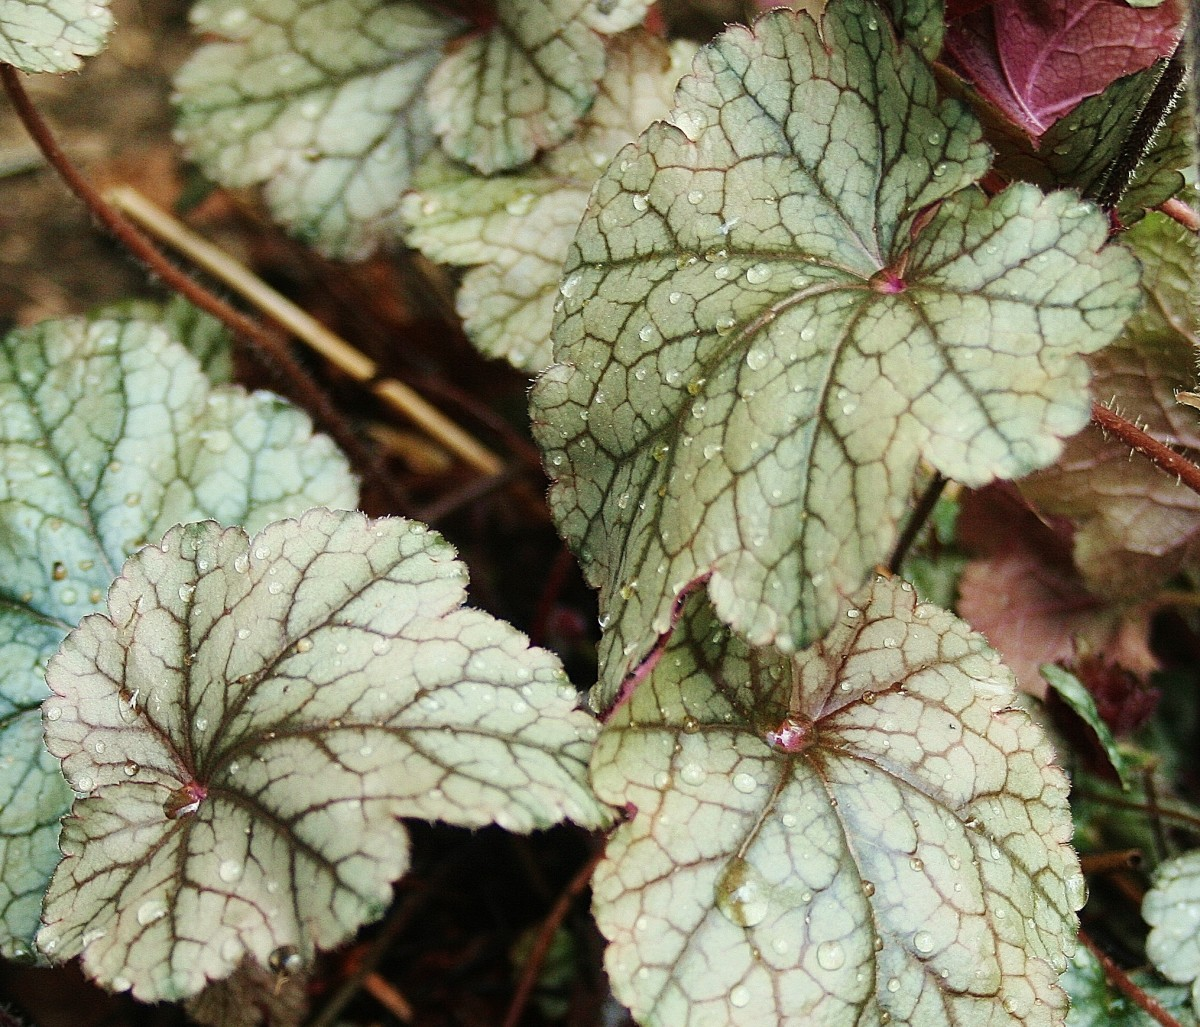 'Cinnabar Silver' has silver leaves with maroon and green veins.